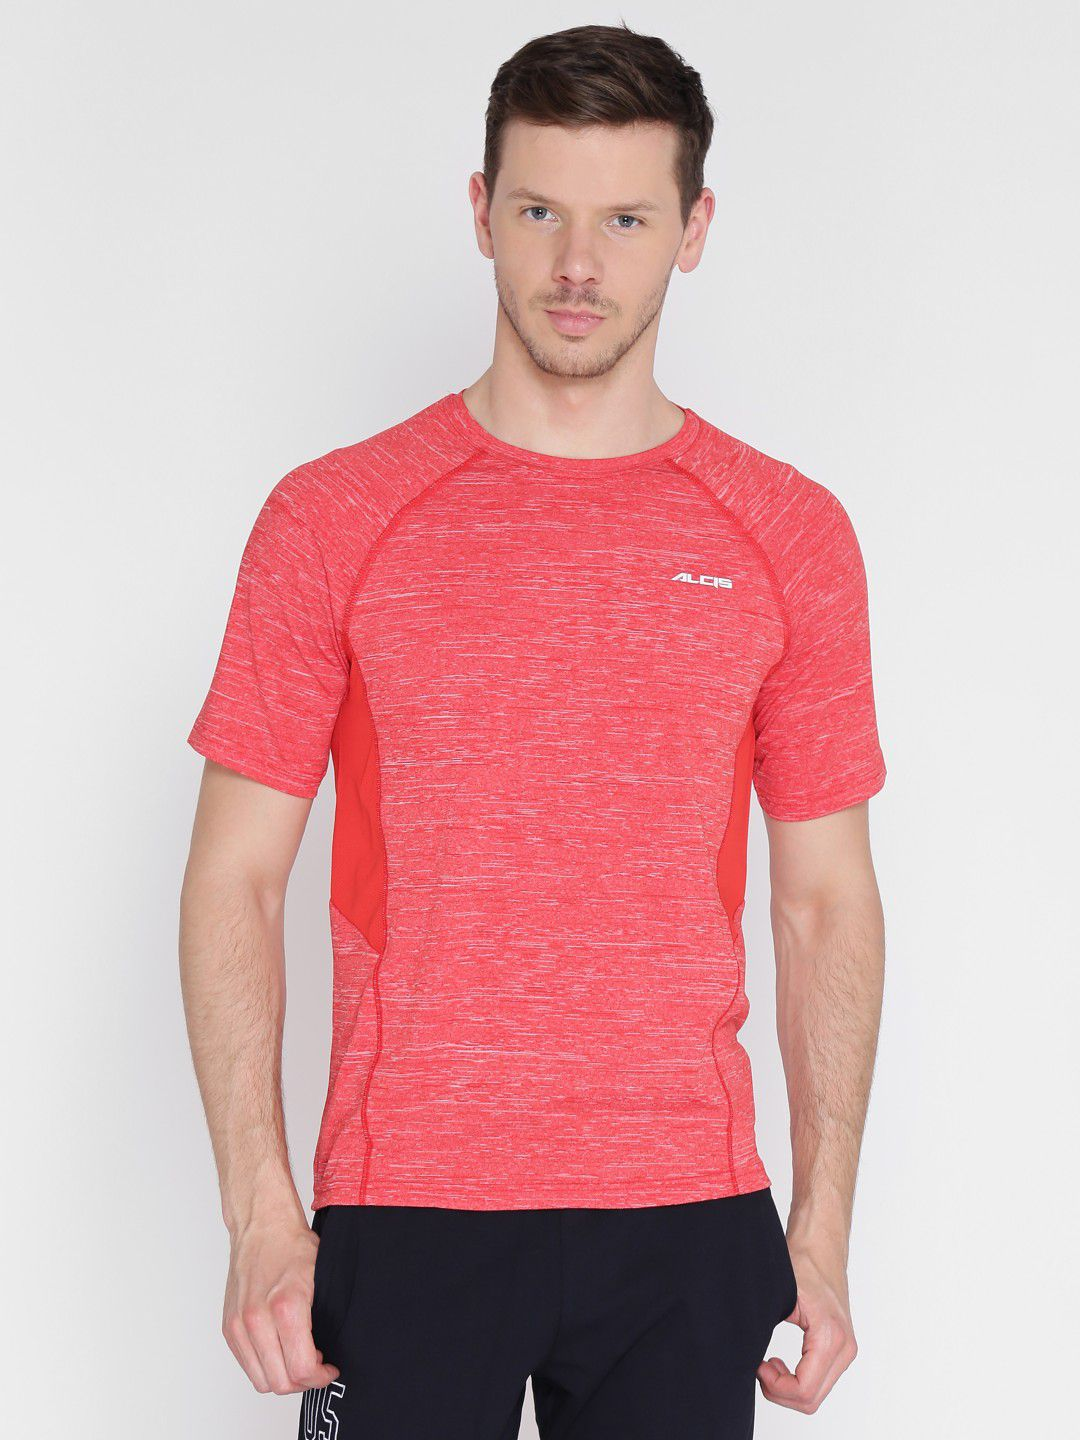 Alcis Mens Solid Red Training T-Shirt